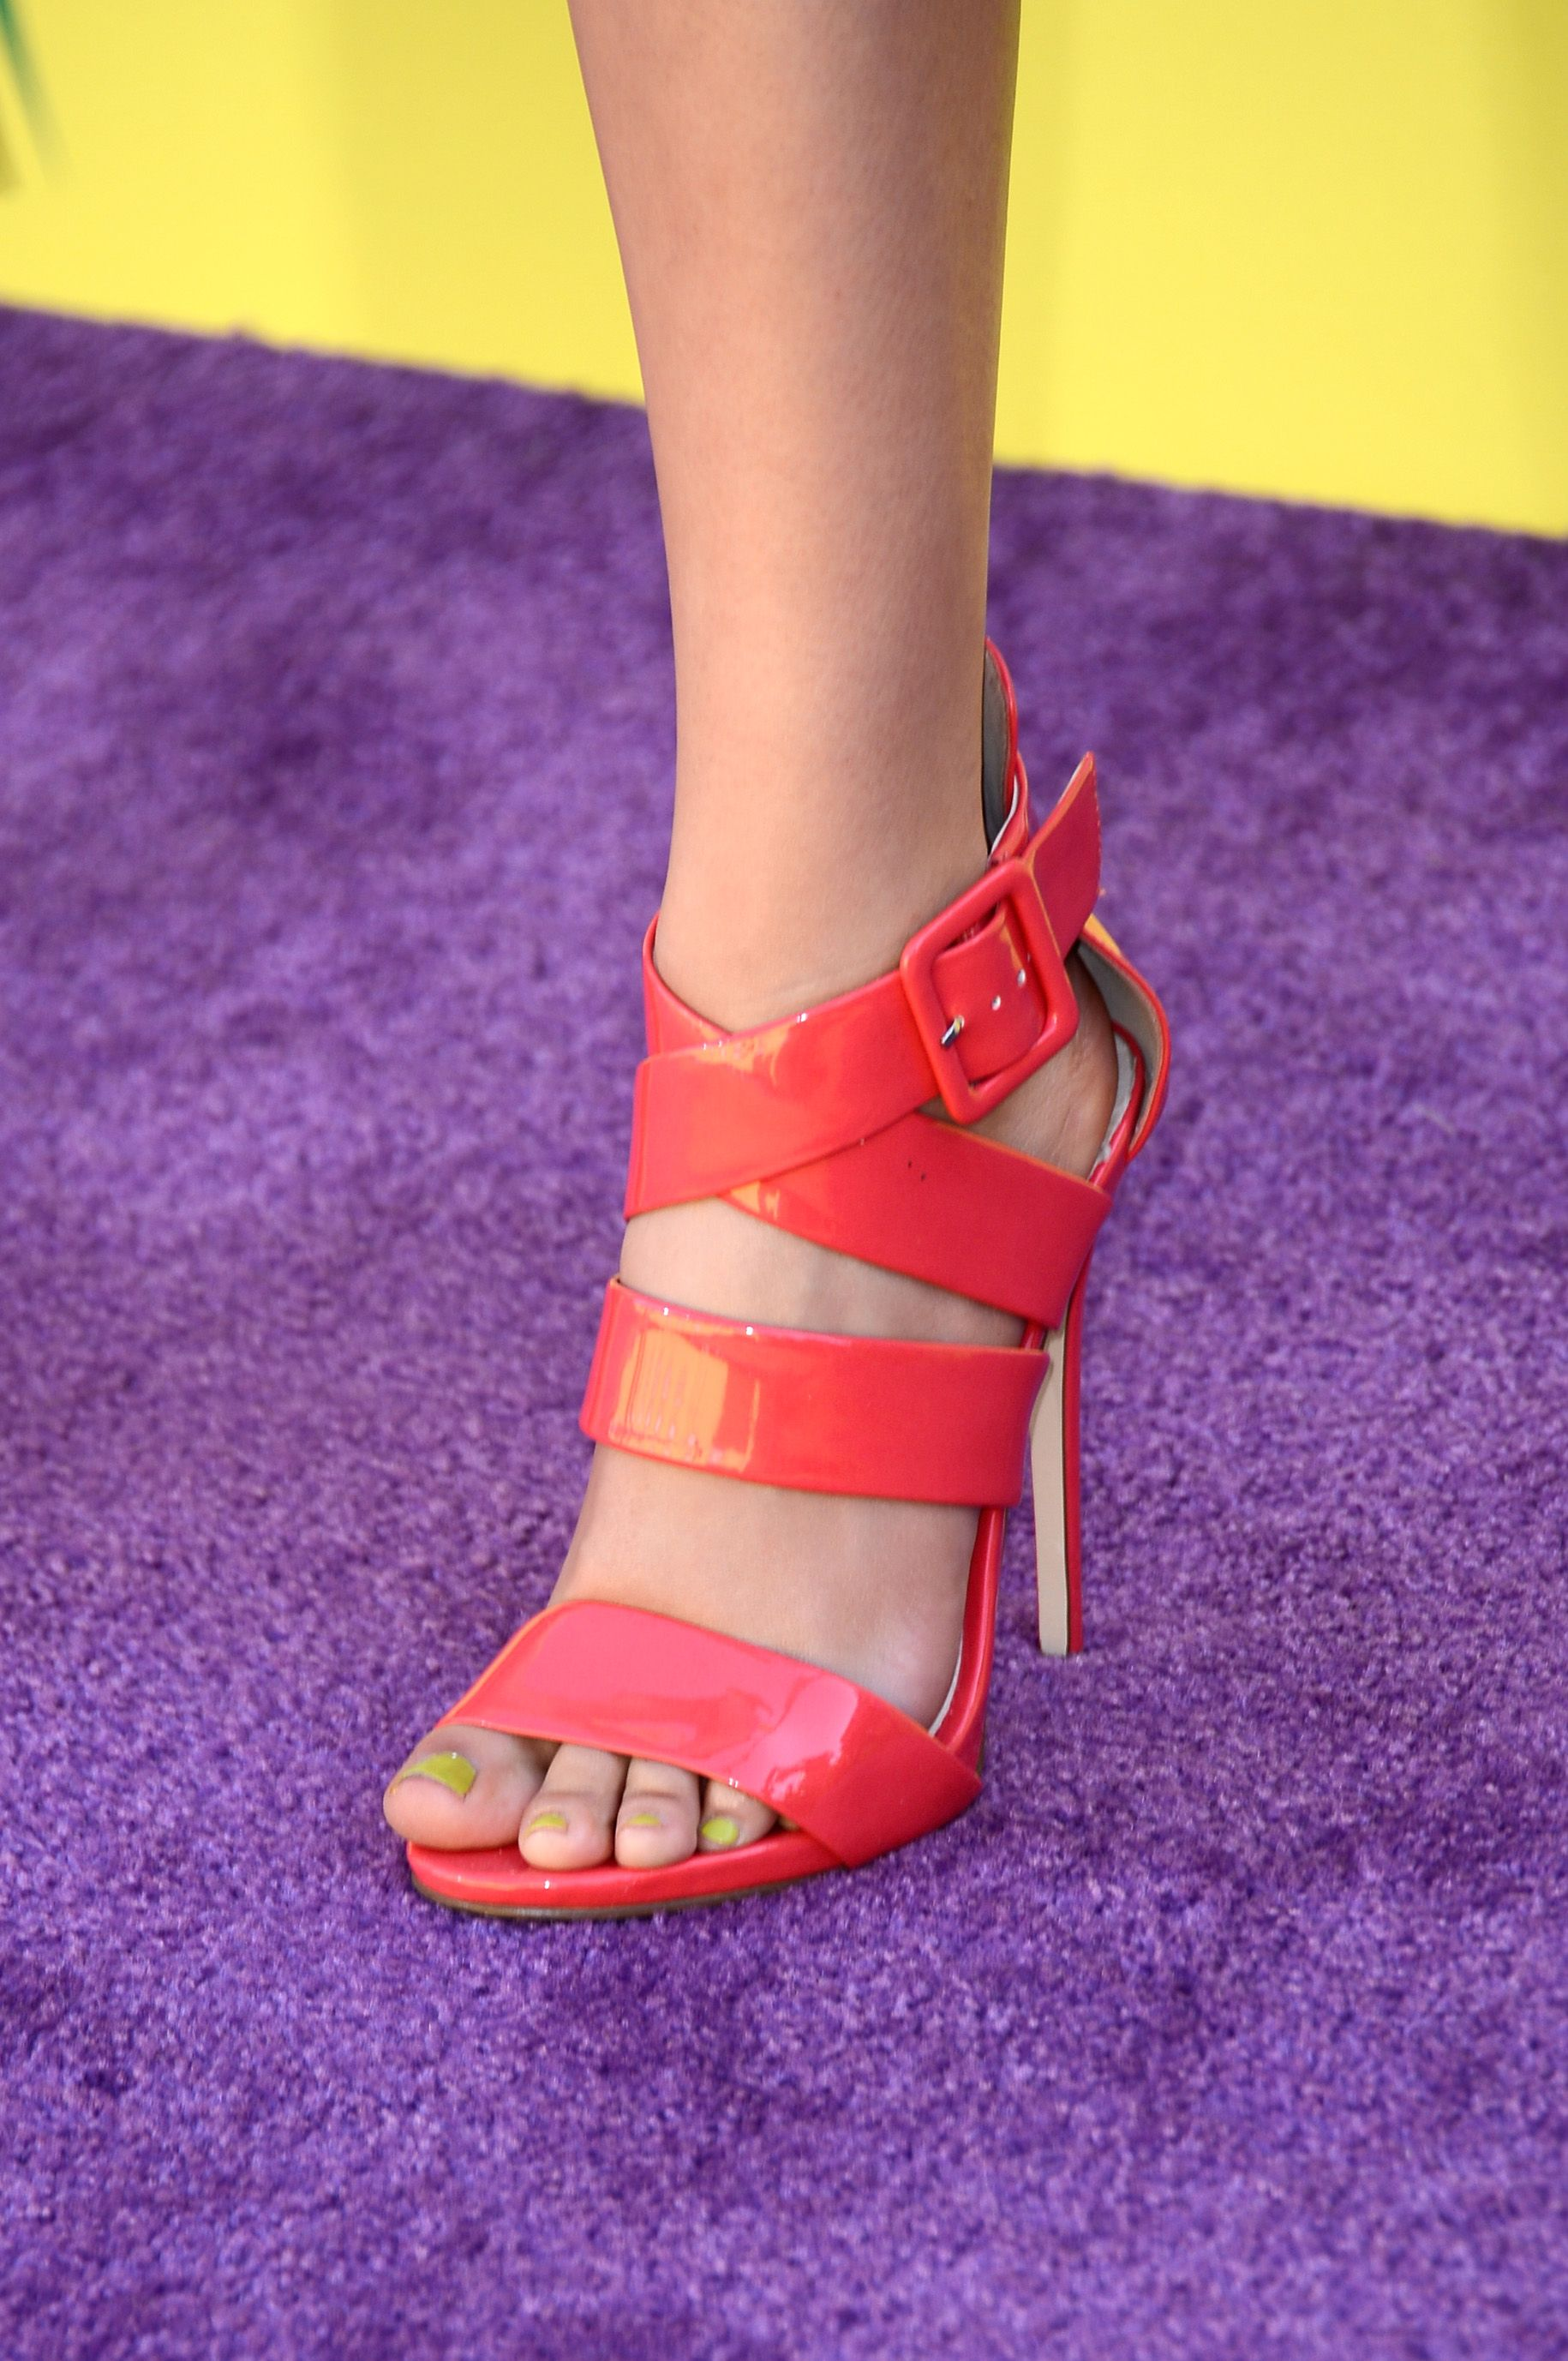 victoria justice wearing aldo strappy sandals at the 2013 teen choice awards. #shoeporn